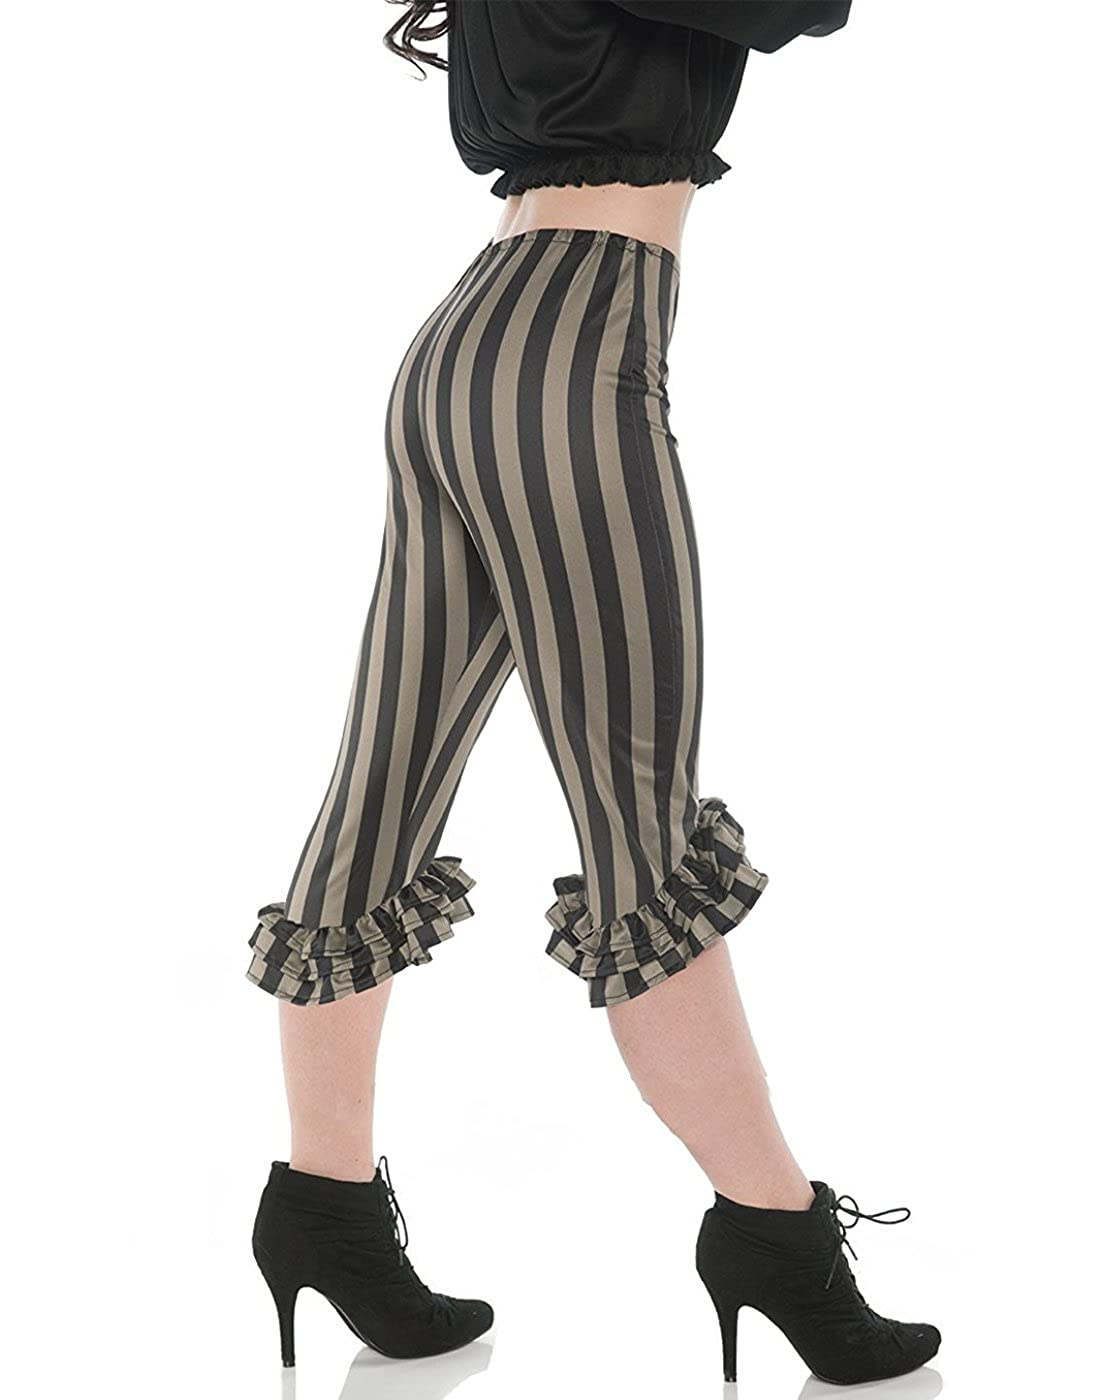 Women's Sexy Pirate Costume Black & Green Stripe Ruffle Leggings - DeluxeAdultCostumes.com